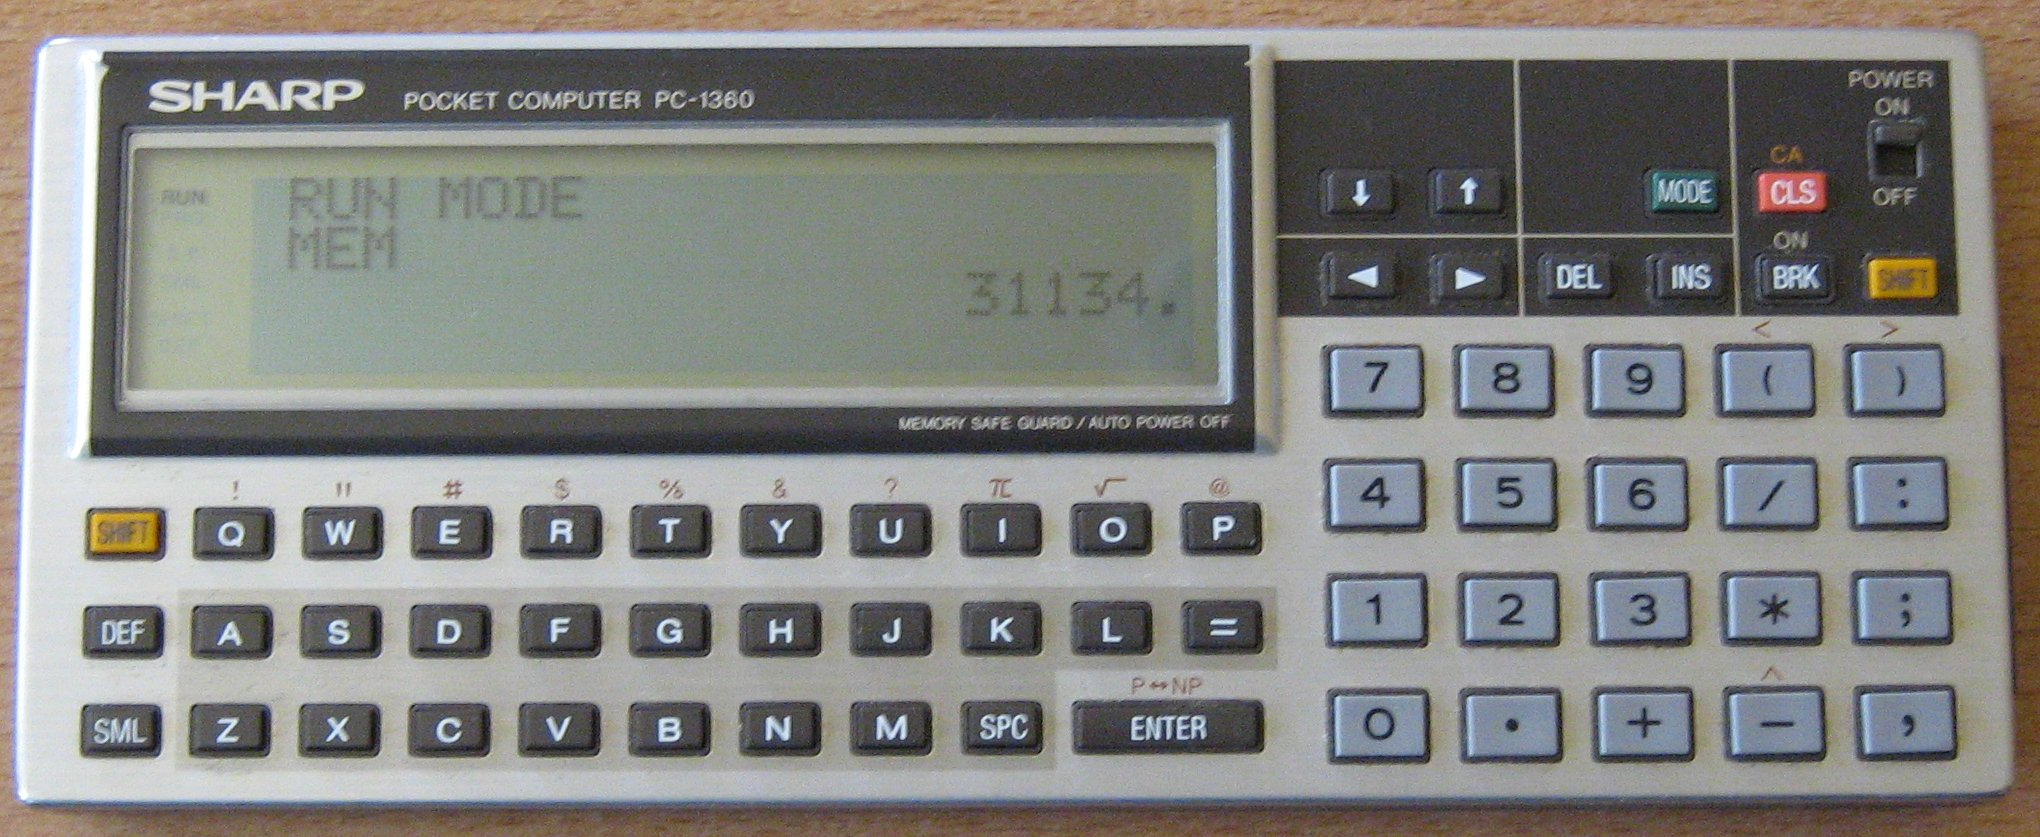 Sharp PC 1360